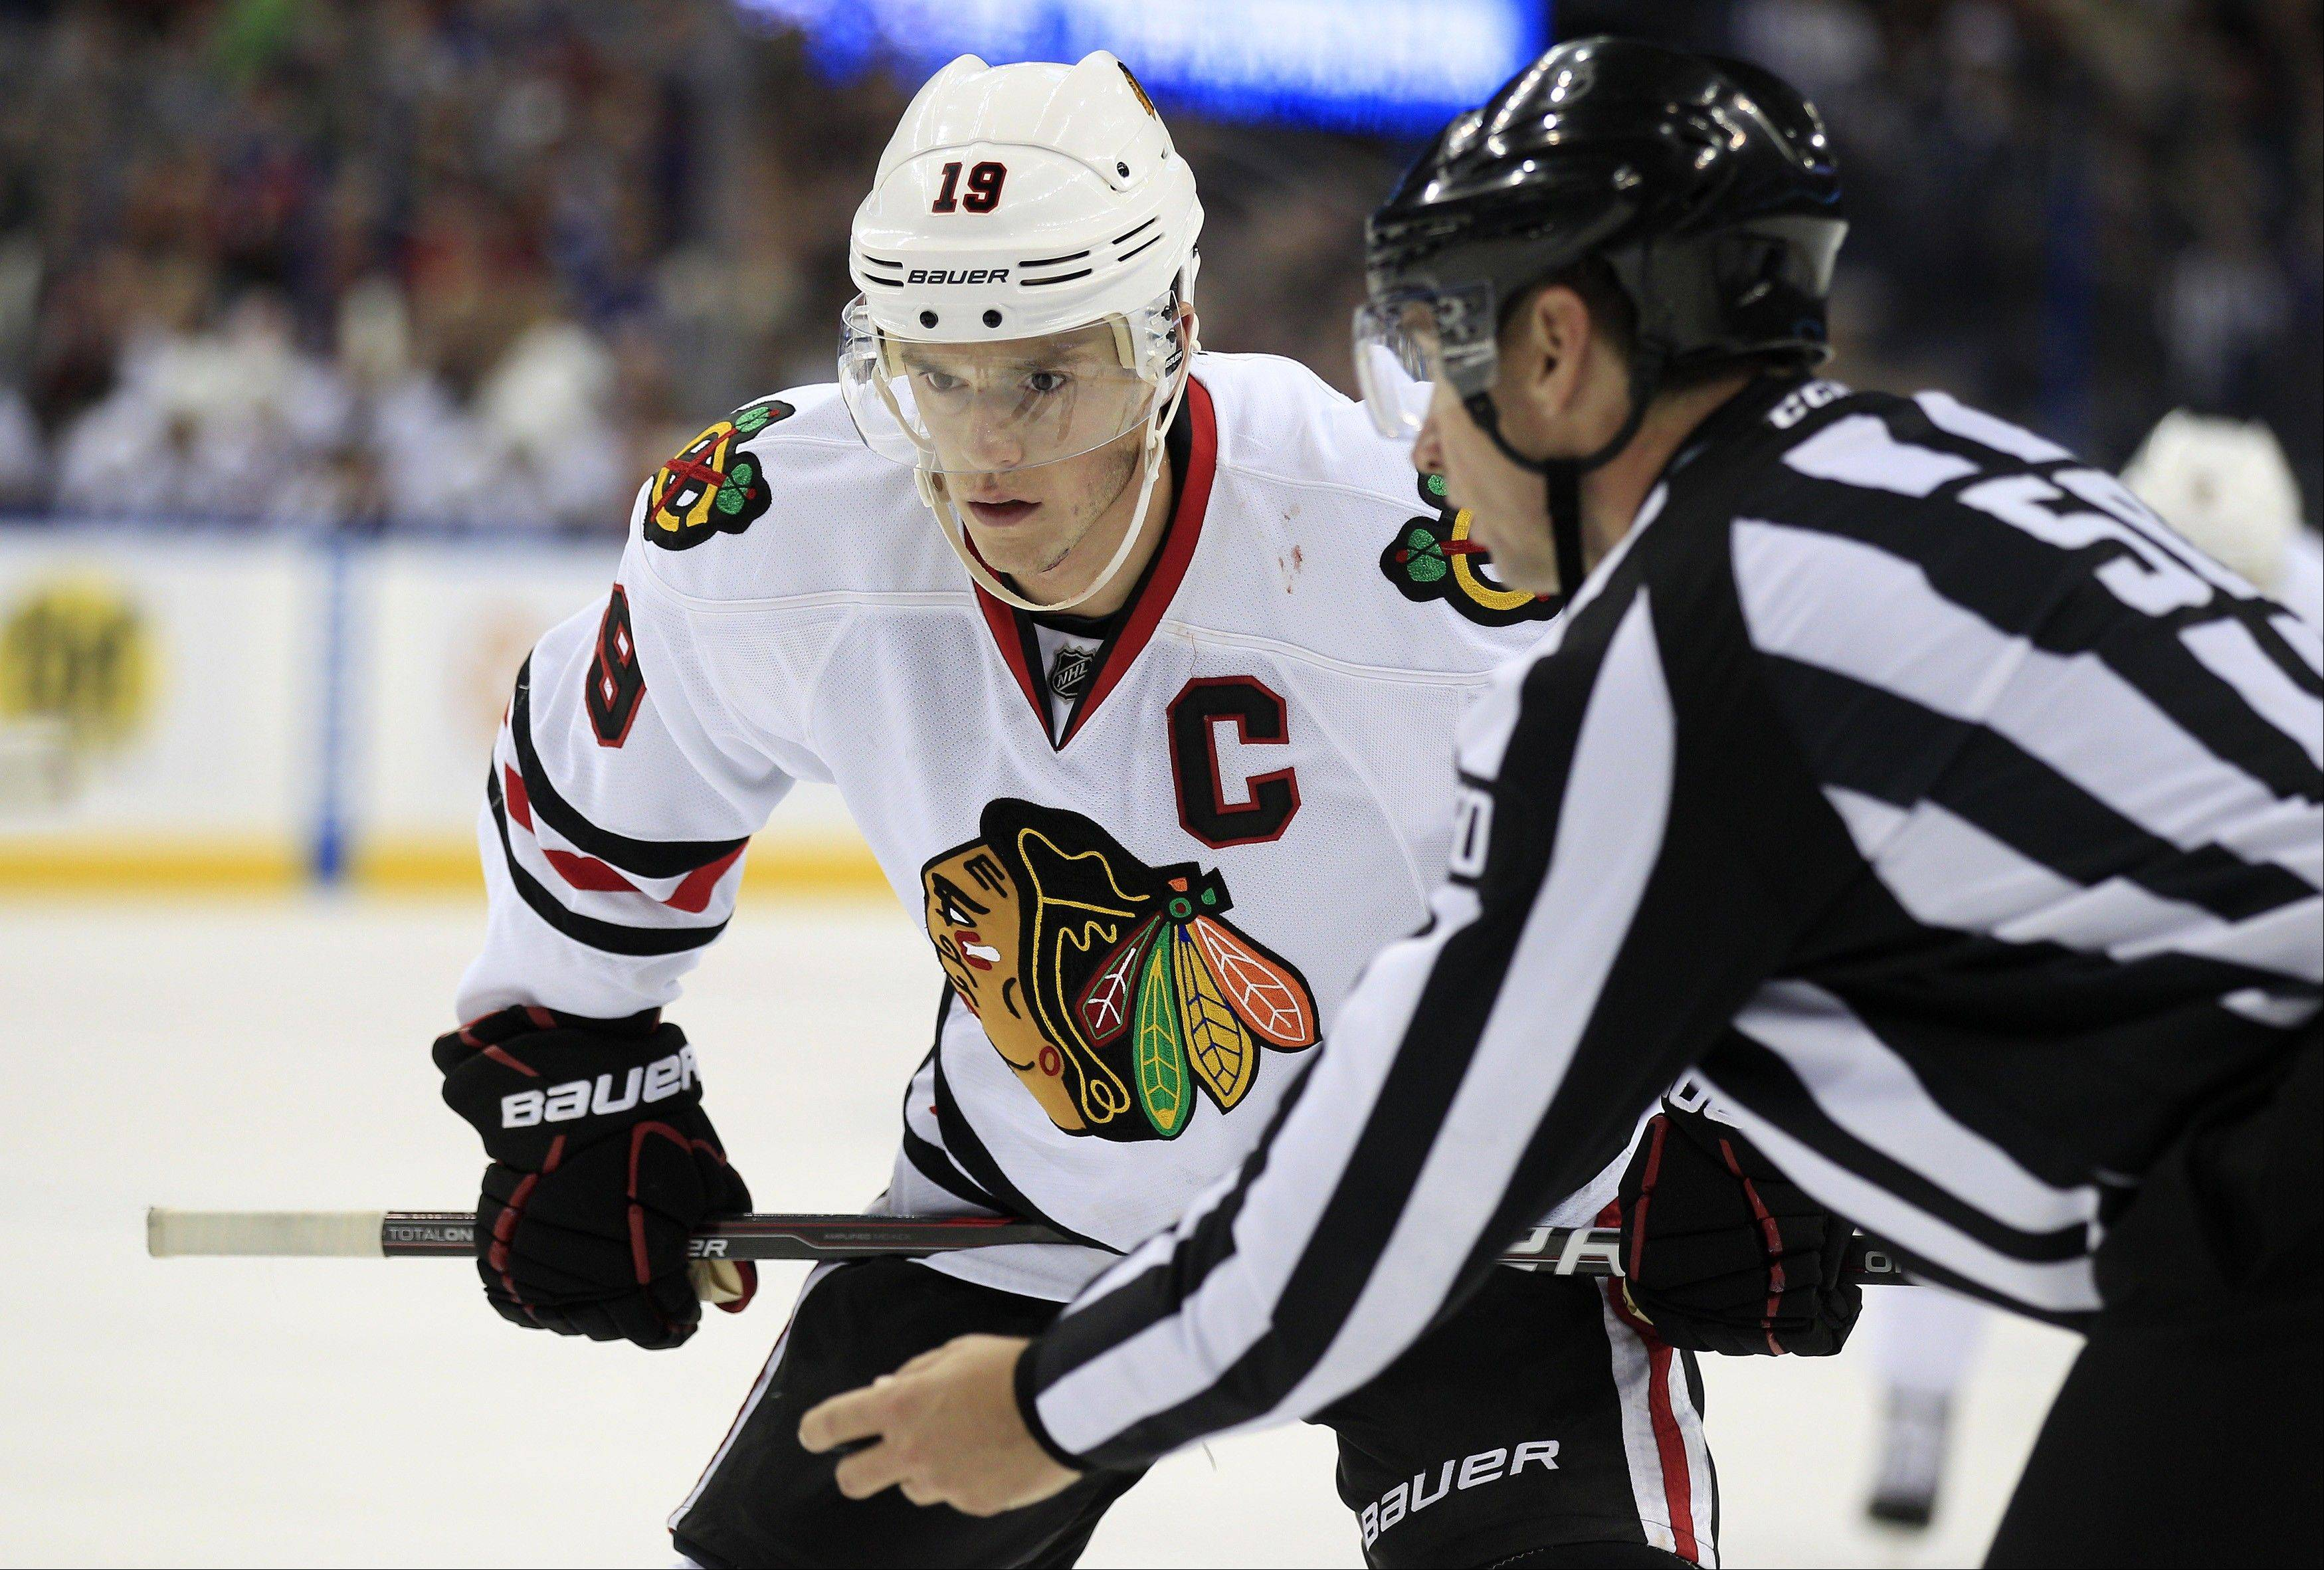 There's still no return date set for Blackhawks captain Jonathan Toews, who is recovering from a concussion.